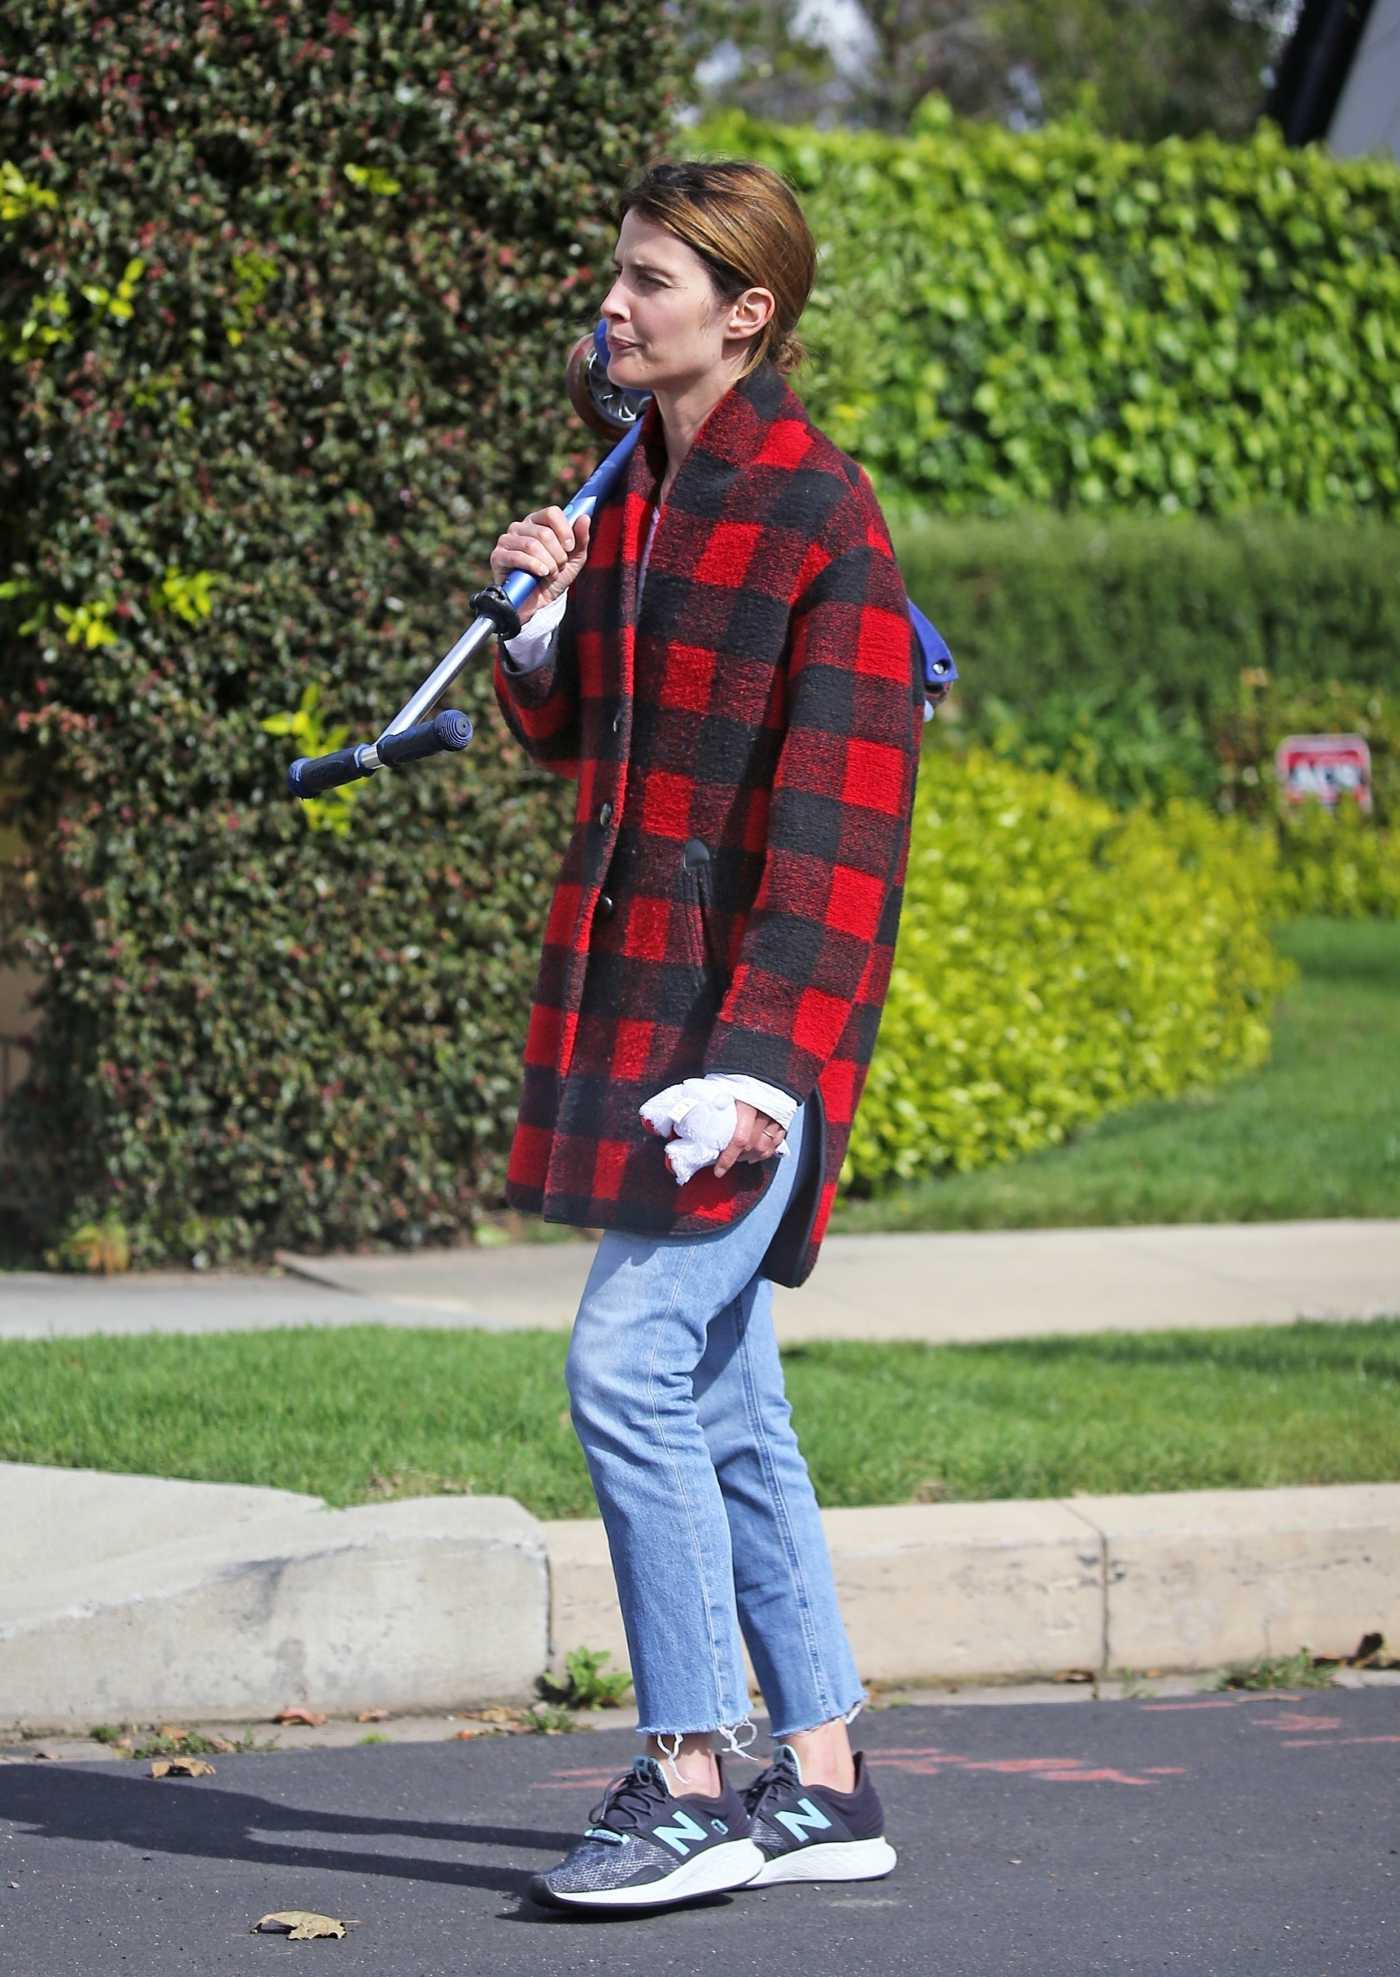 Cobie Smulders in a Plaid Coat Was Seen Out in Los Angeles 04/08/2020